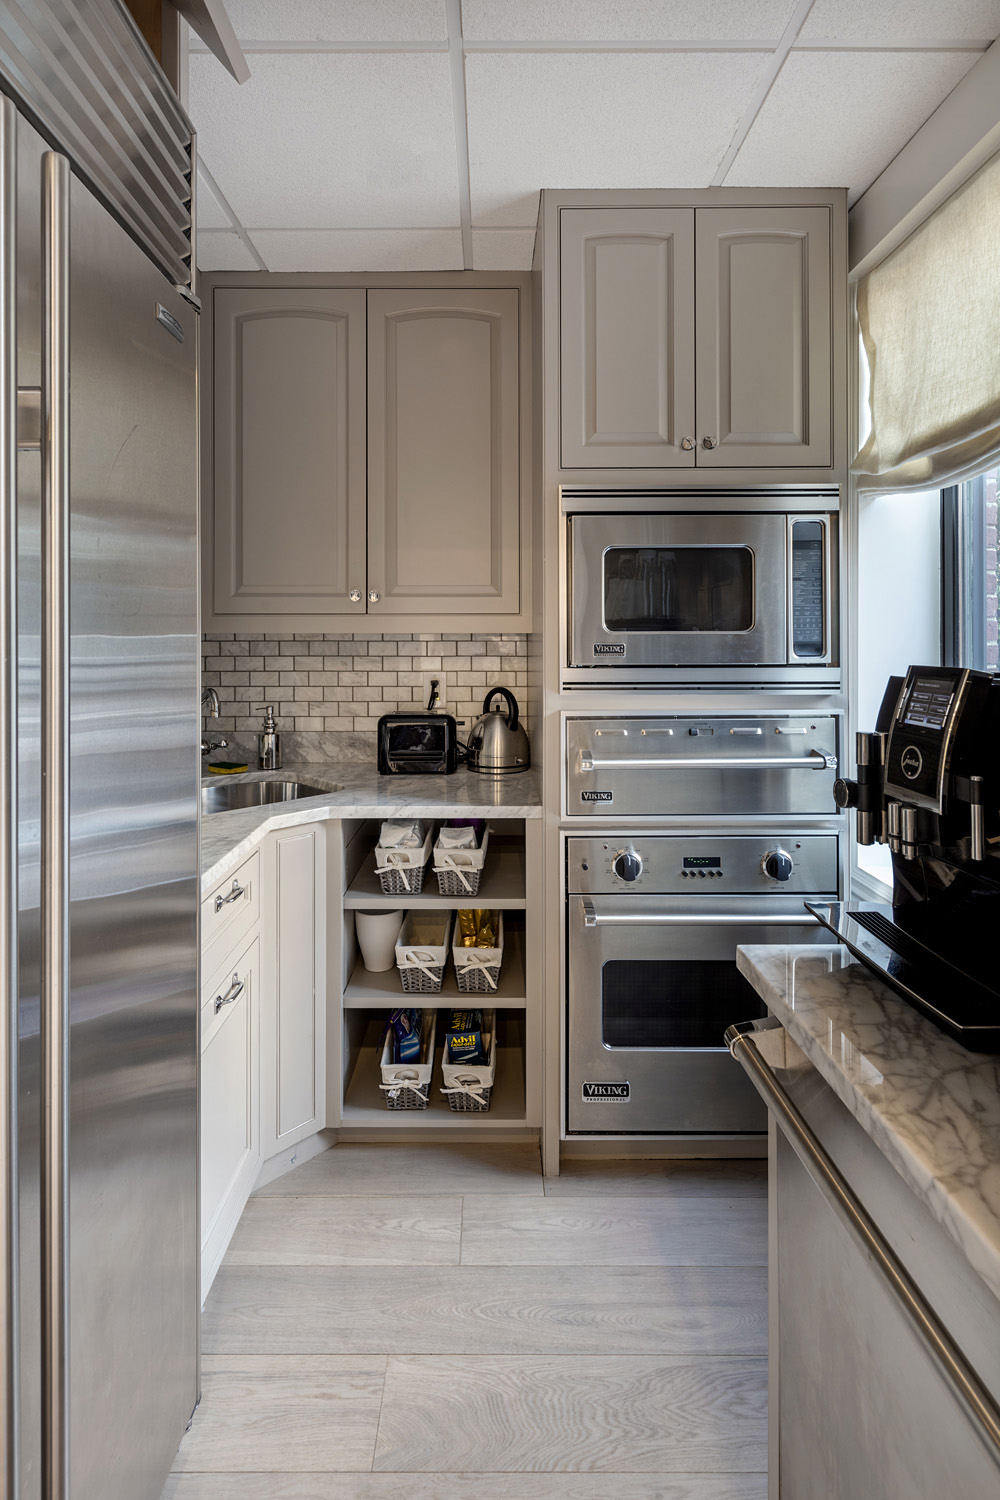 Kitchen.jpg